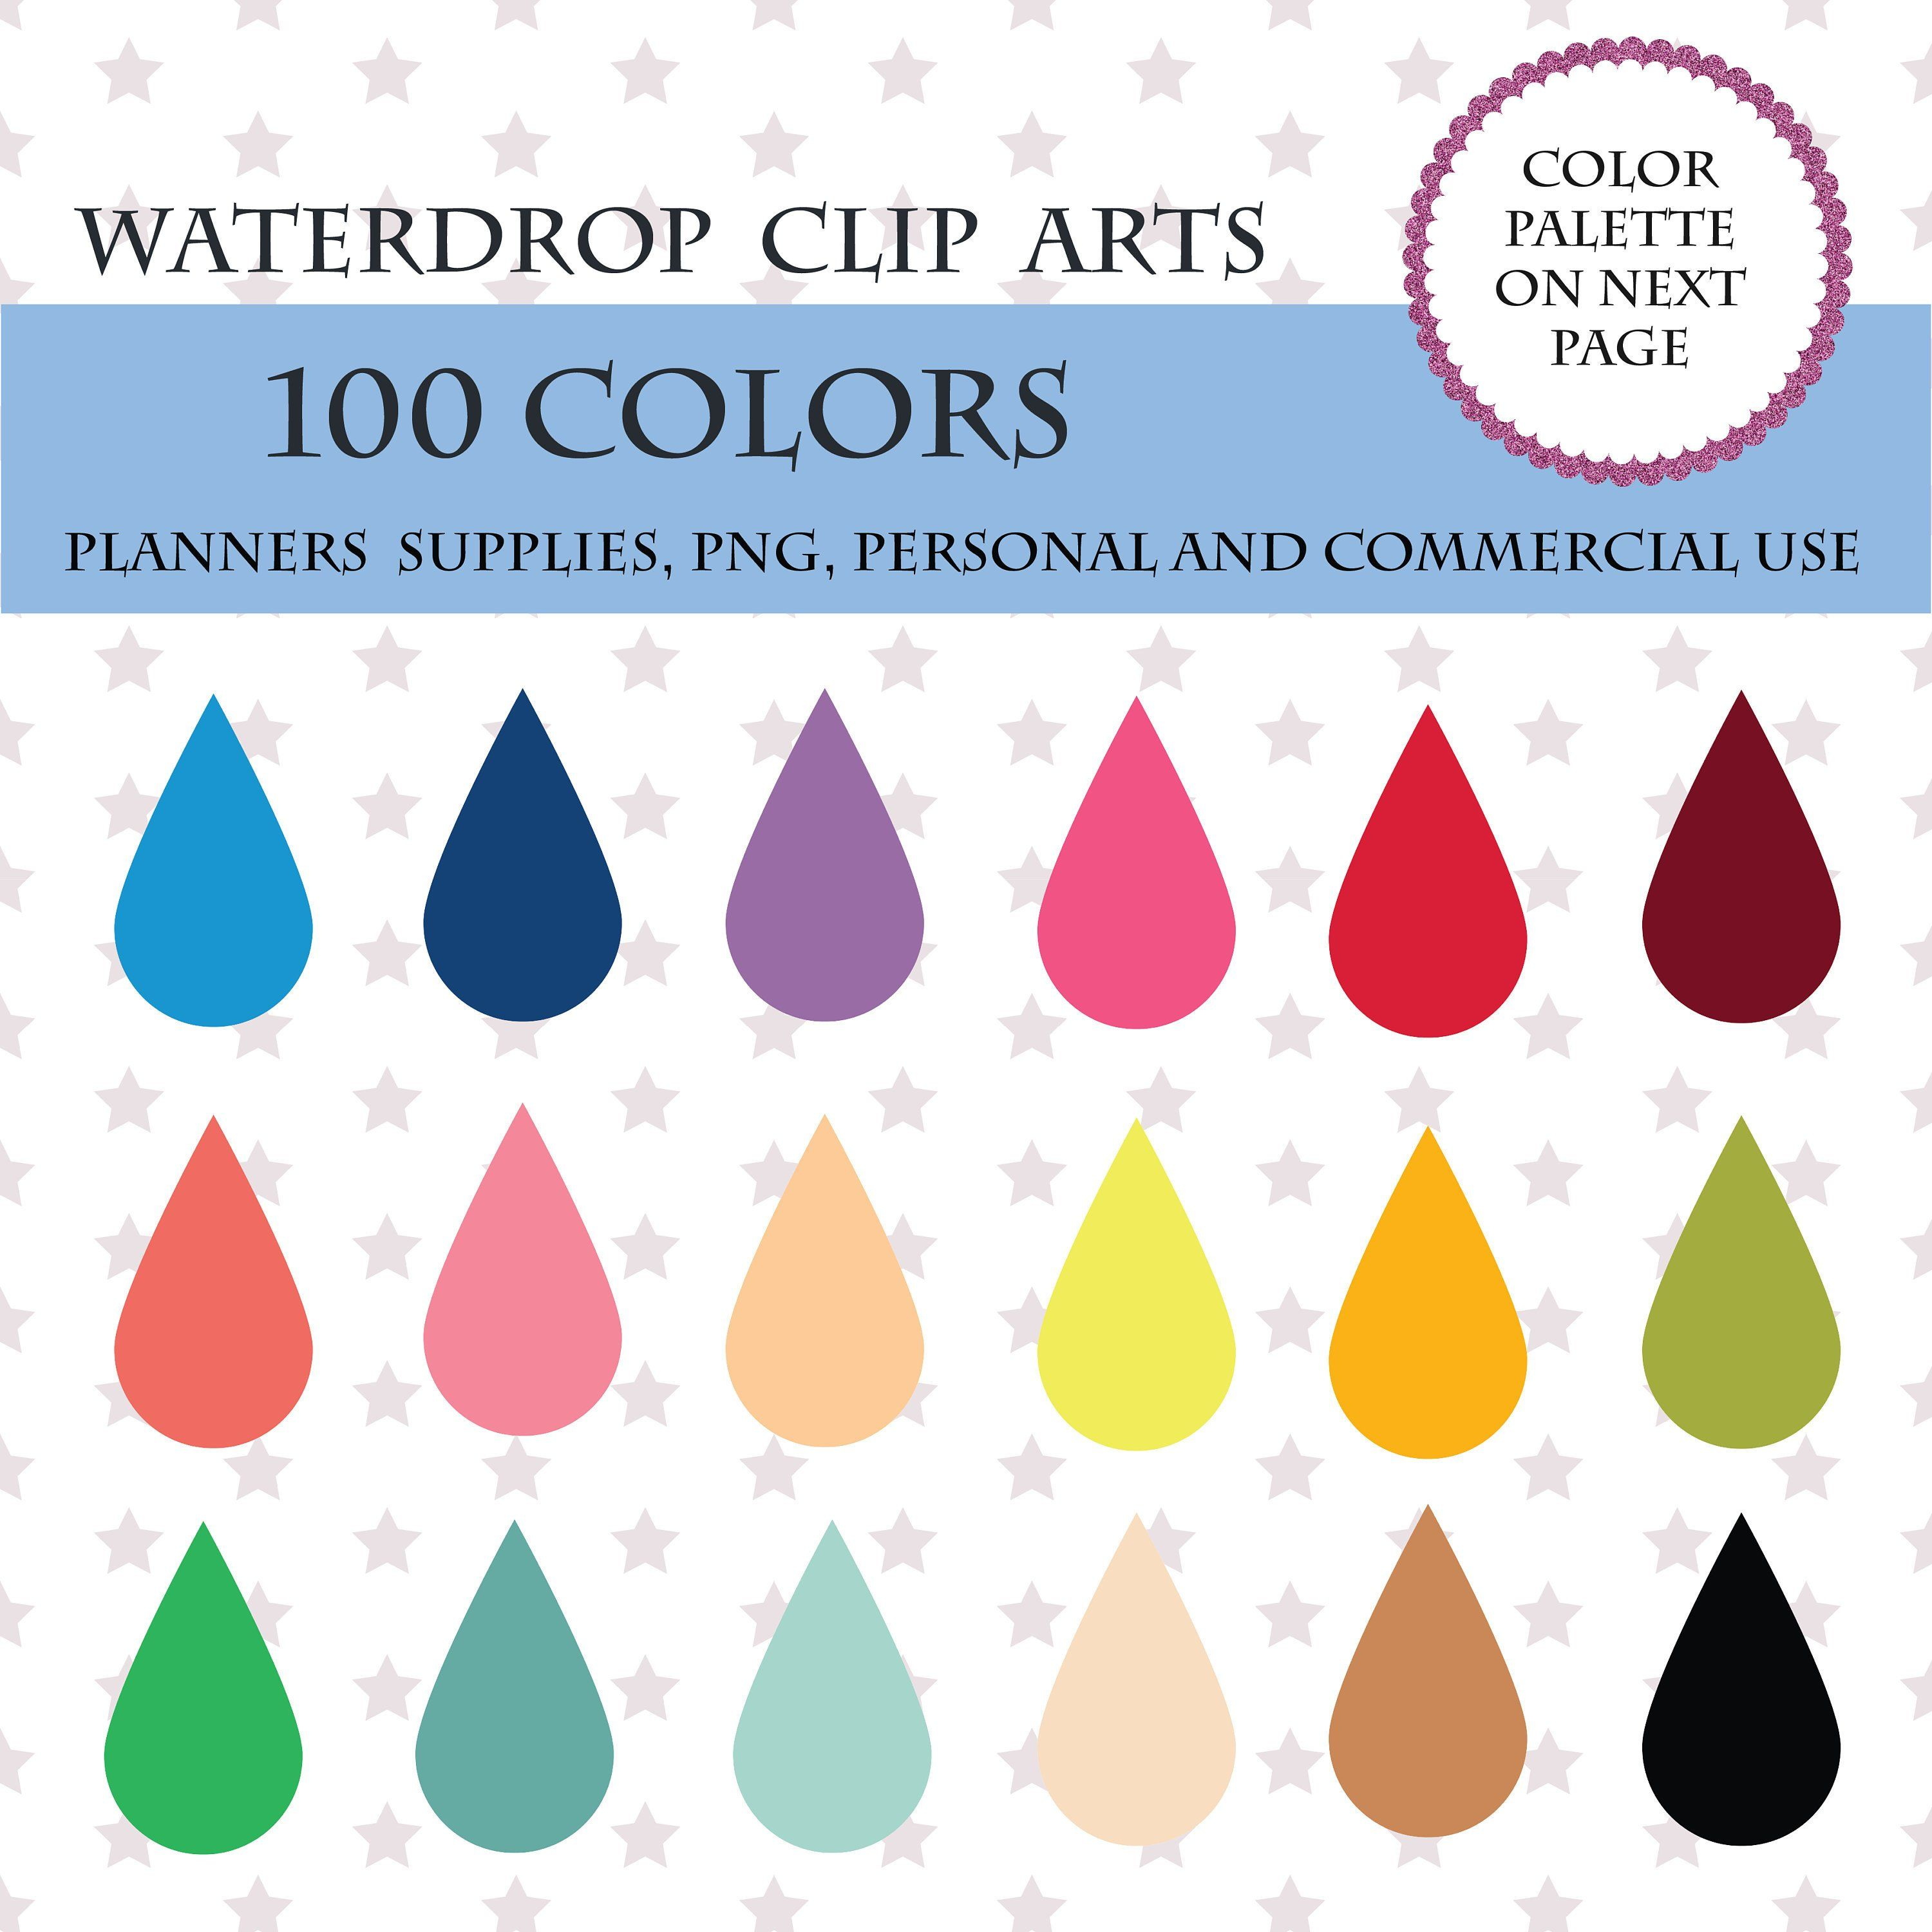 small resolution of 100 teardrop cliparts raindrop clipart waterdrops clipart droplet icon cute rain drop colorful rainbow water drop clipart pl014